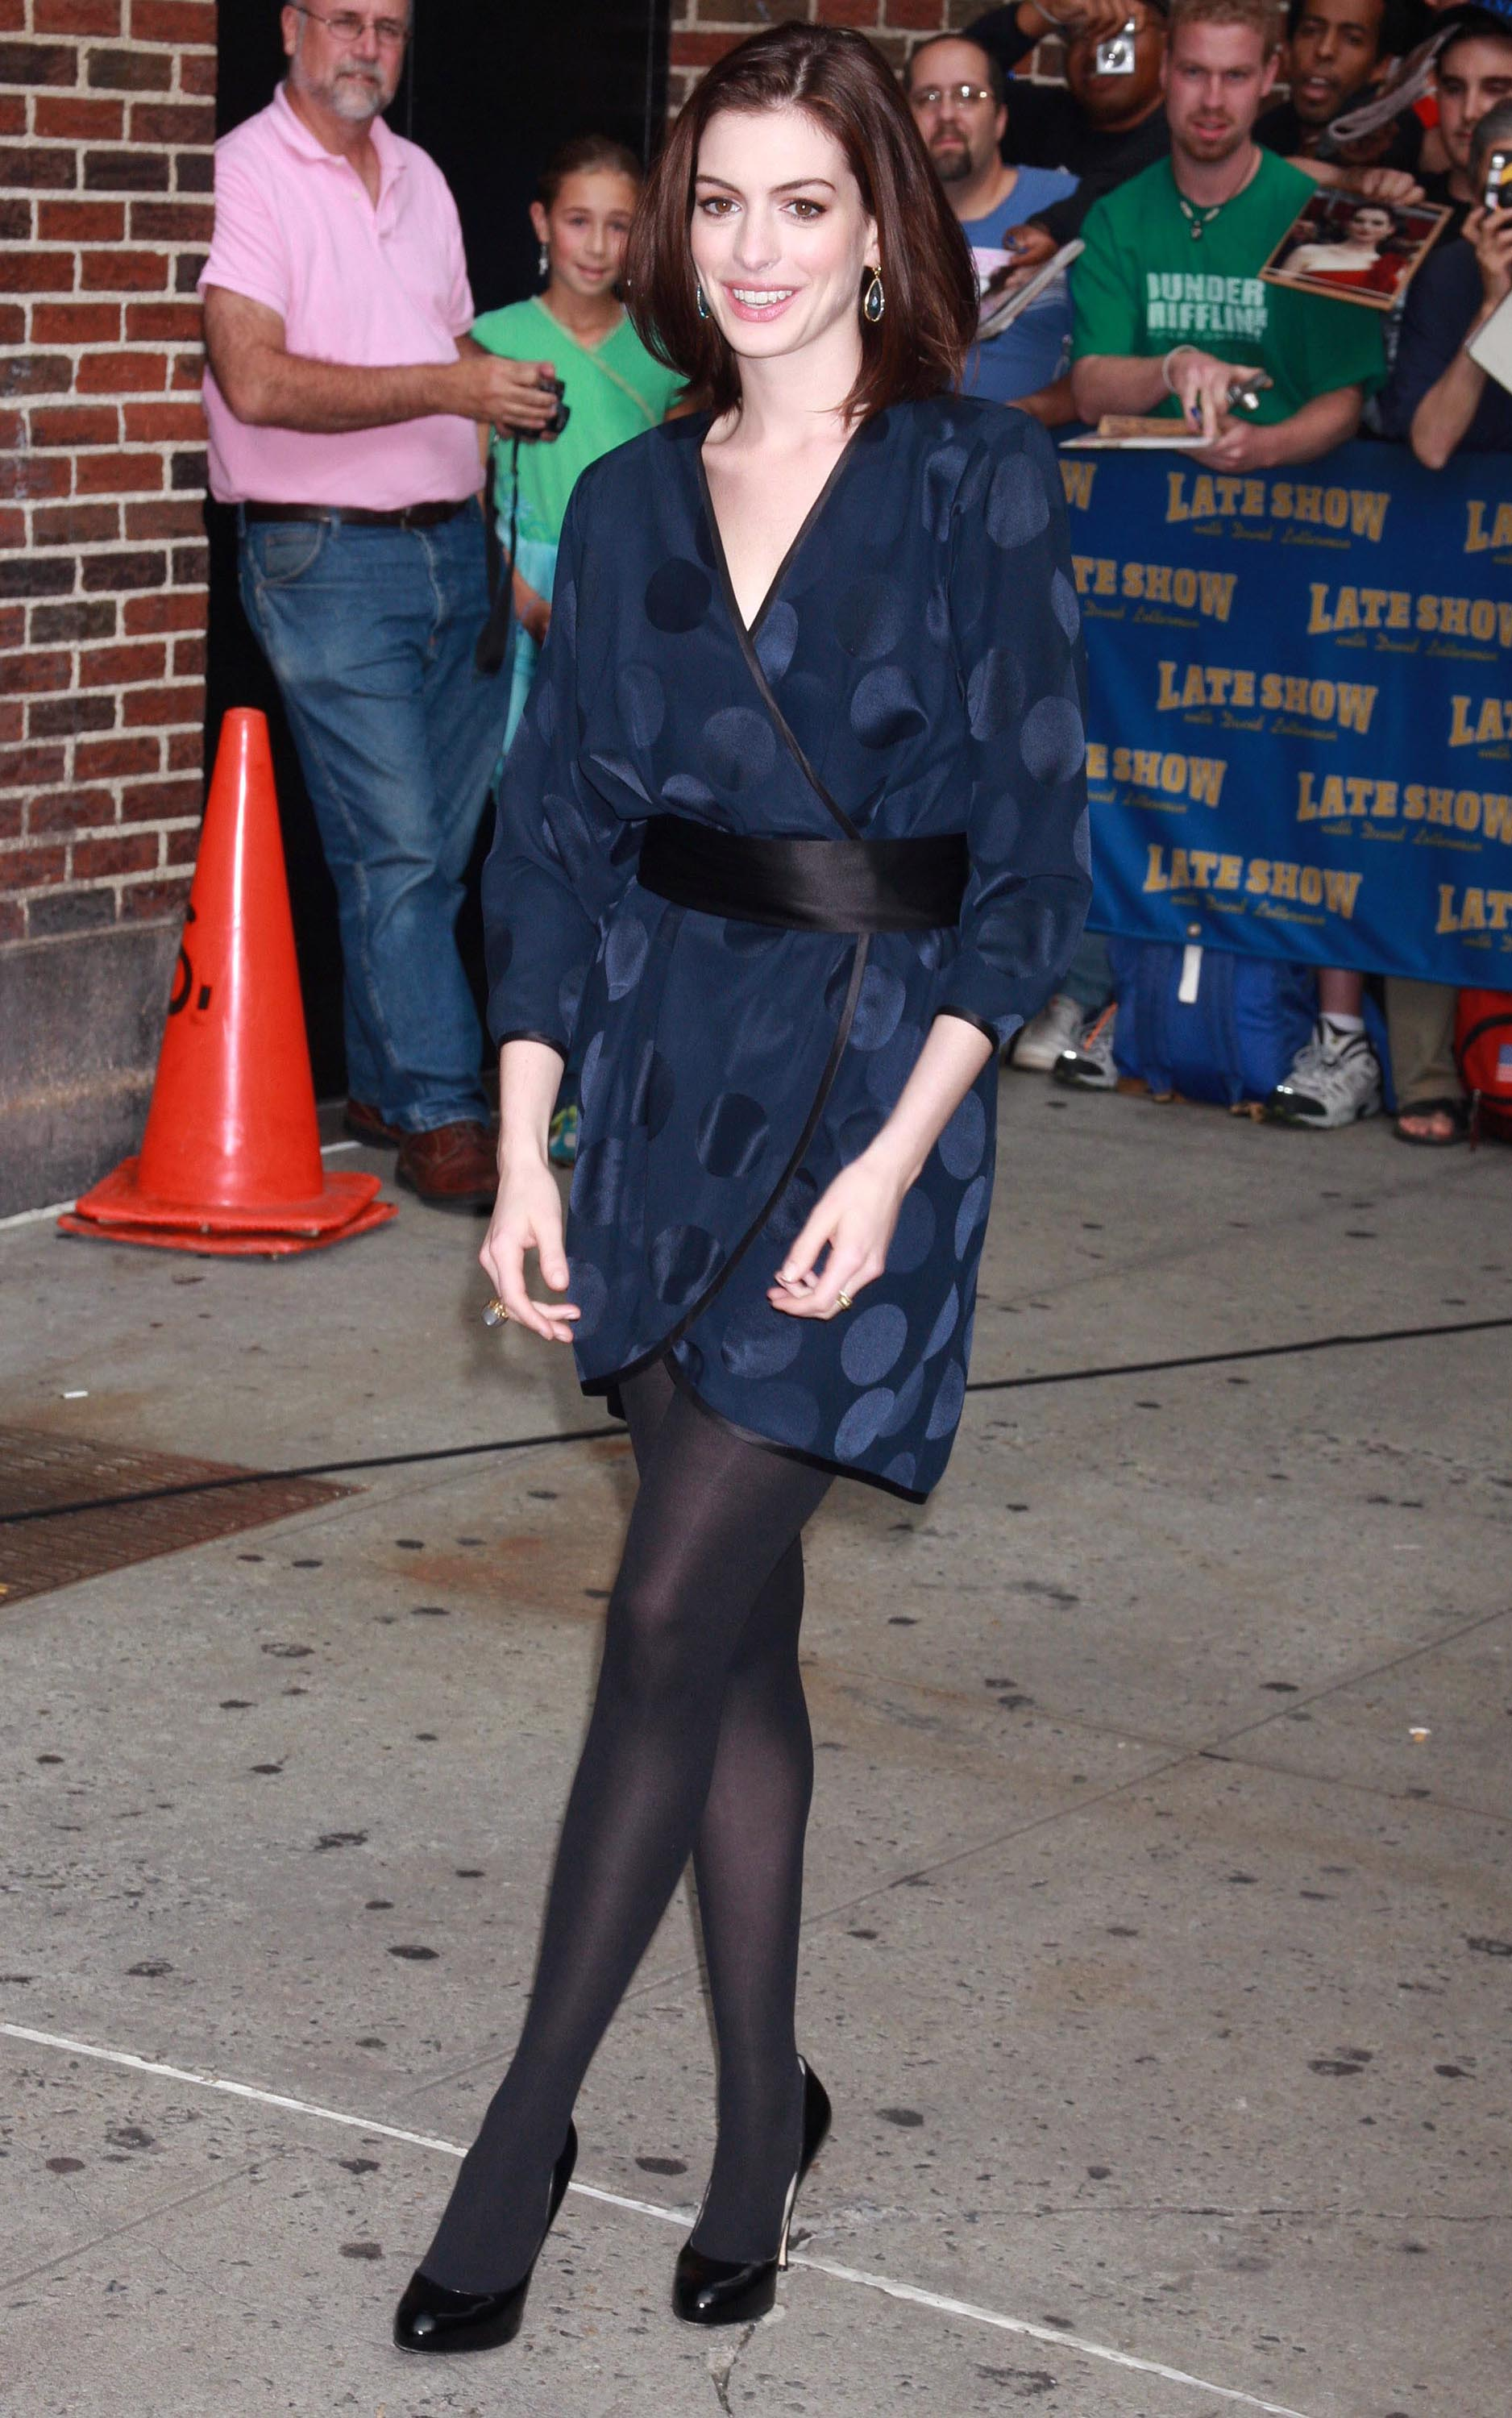 47616_Anne_Hathaway_2008-09-30_-_visits_the_Late_Show_with_David_Letterman_0248_122_428lo.jpg